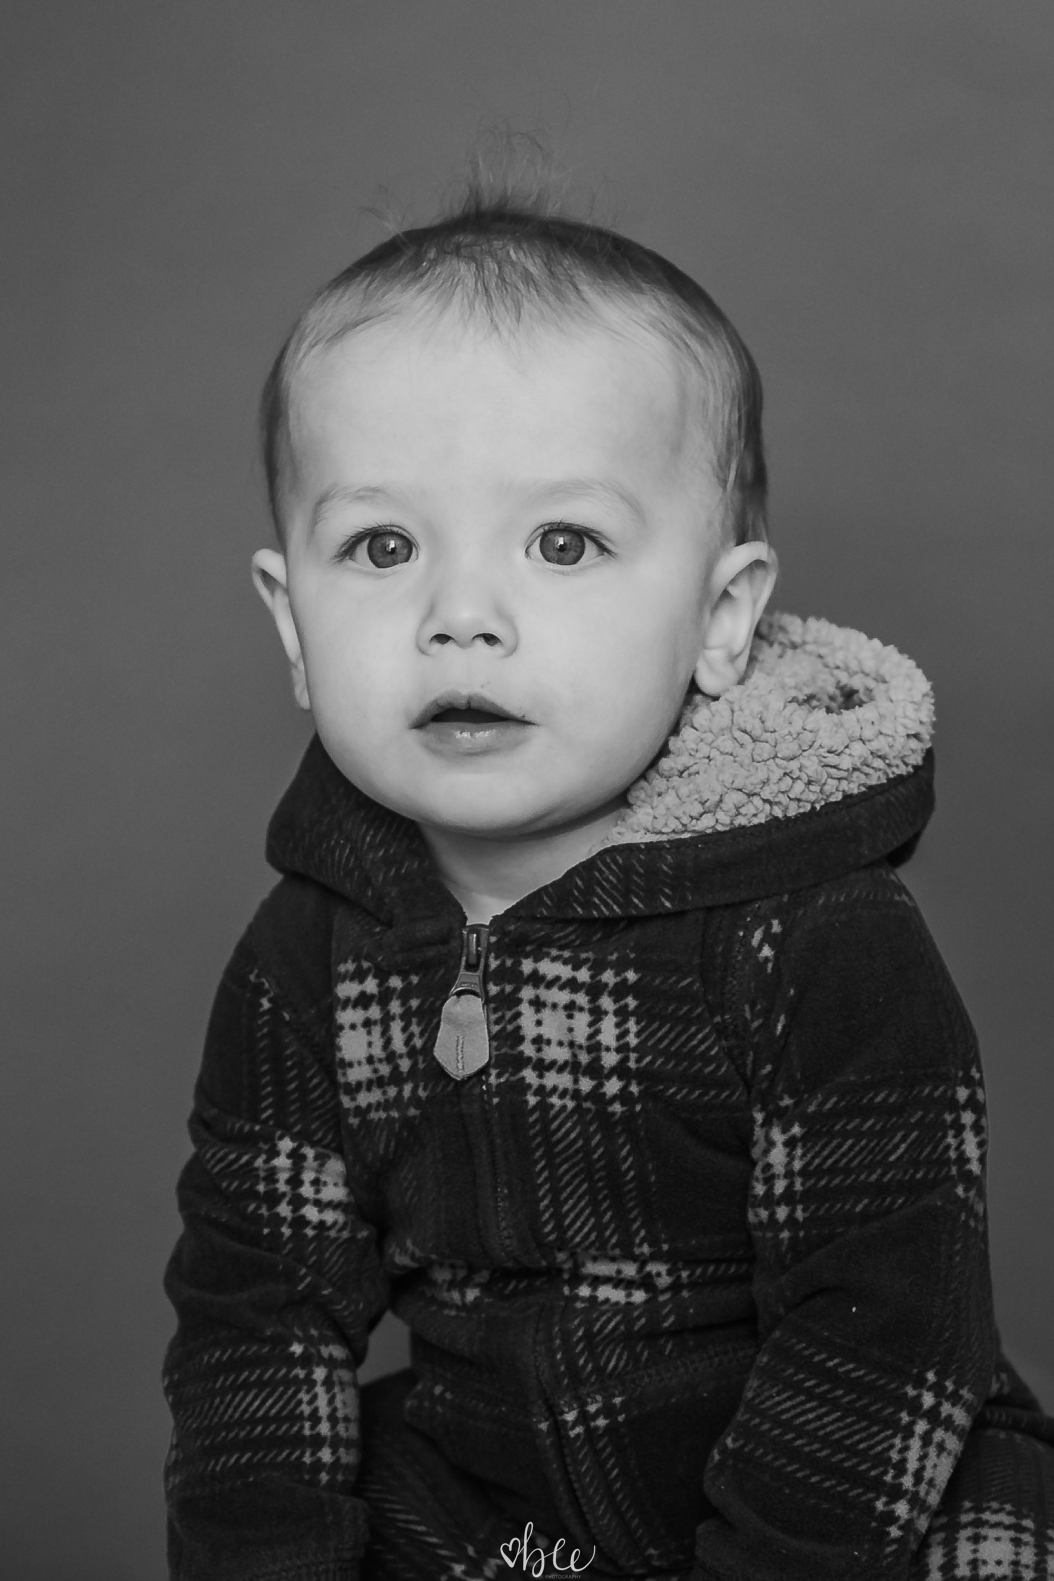 black and white portrait of a little boy